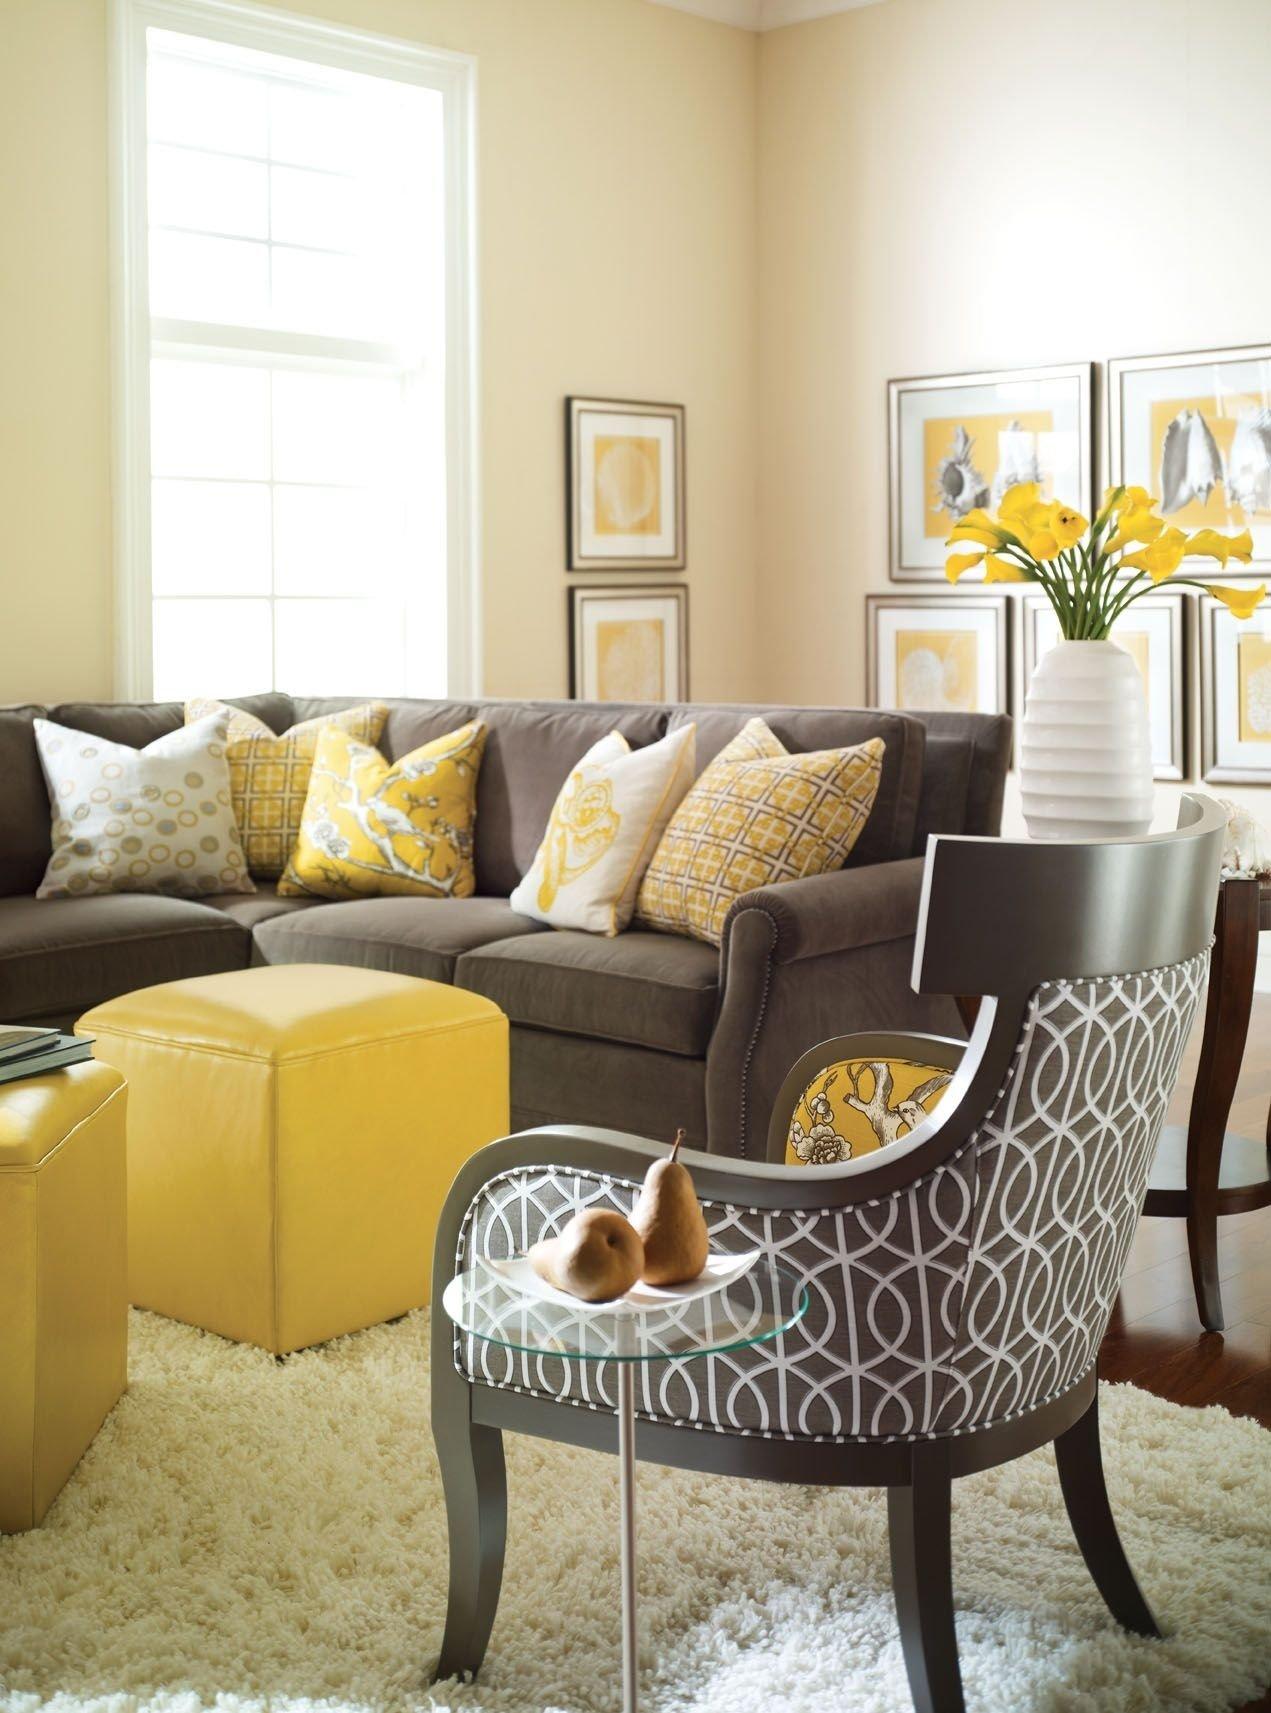 10 Beautiful Grey And Yellow Living Room Ideas tissus dameublement belles idees pour renover linterieur grey 1 2020